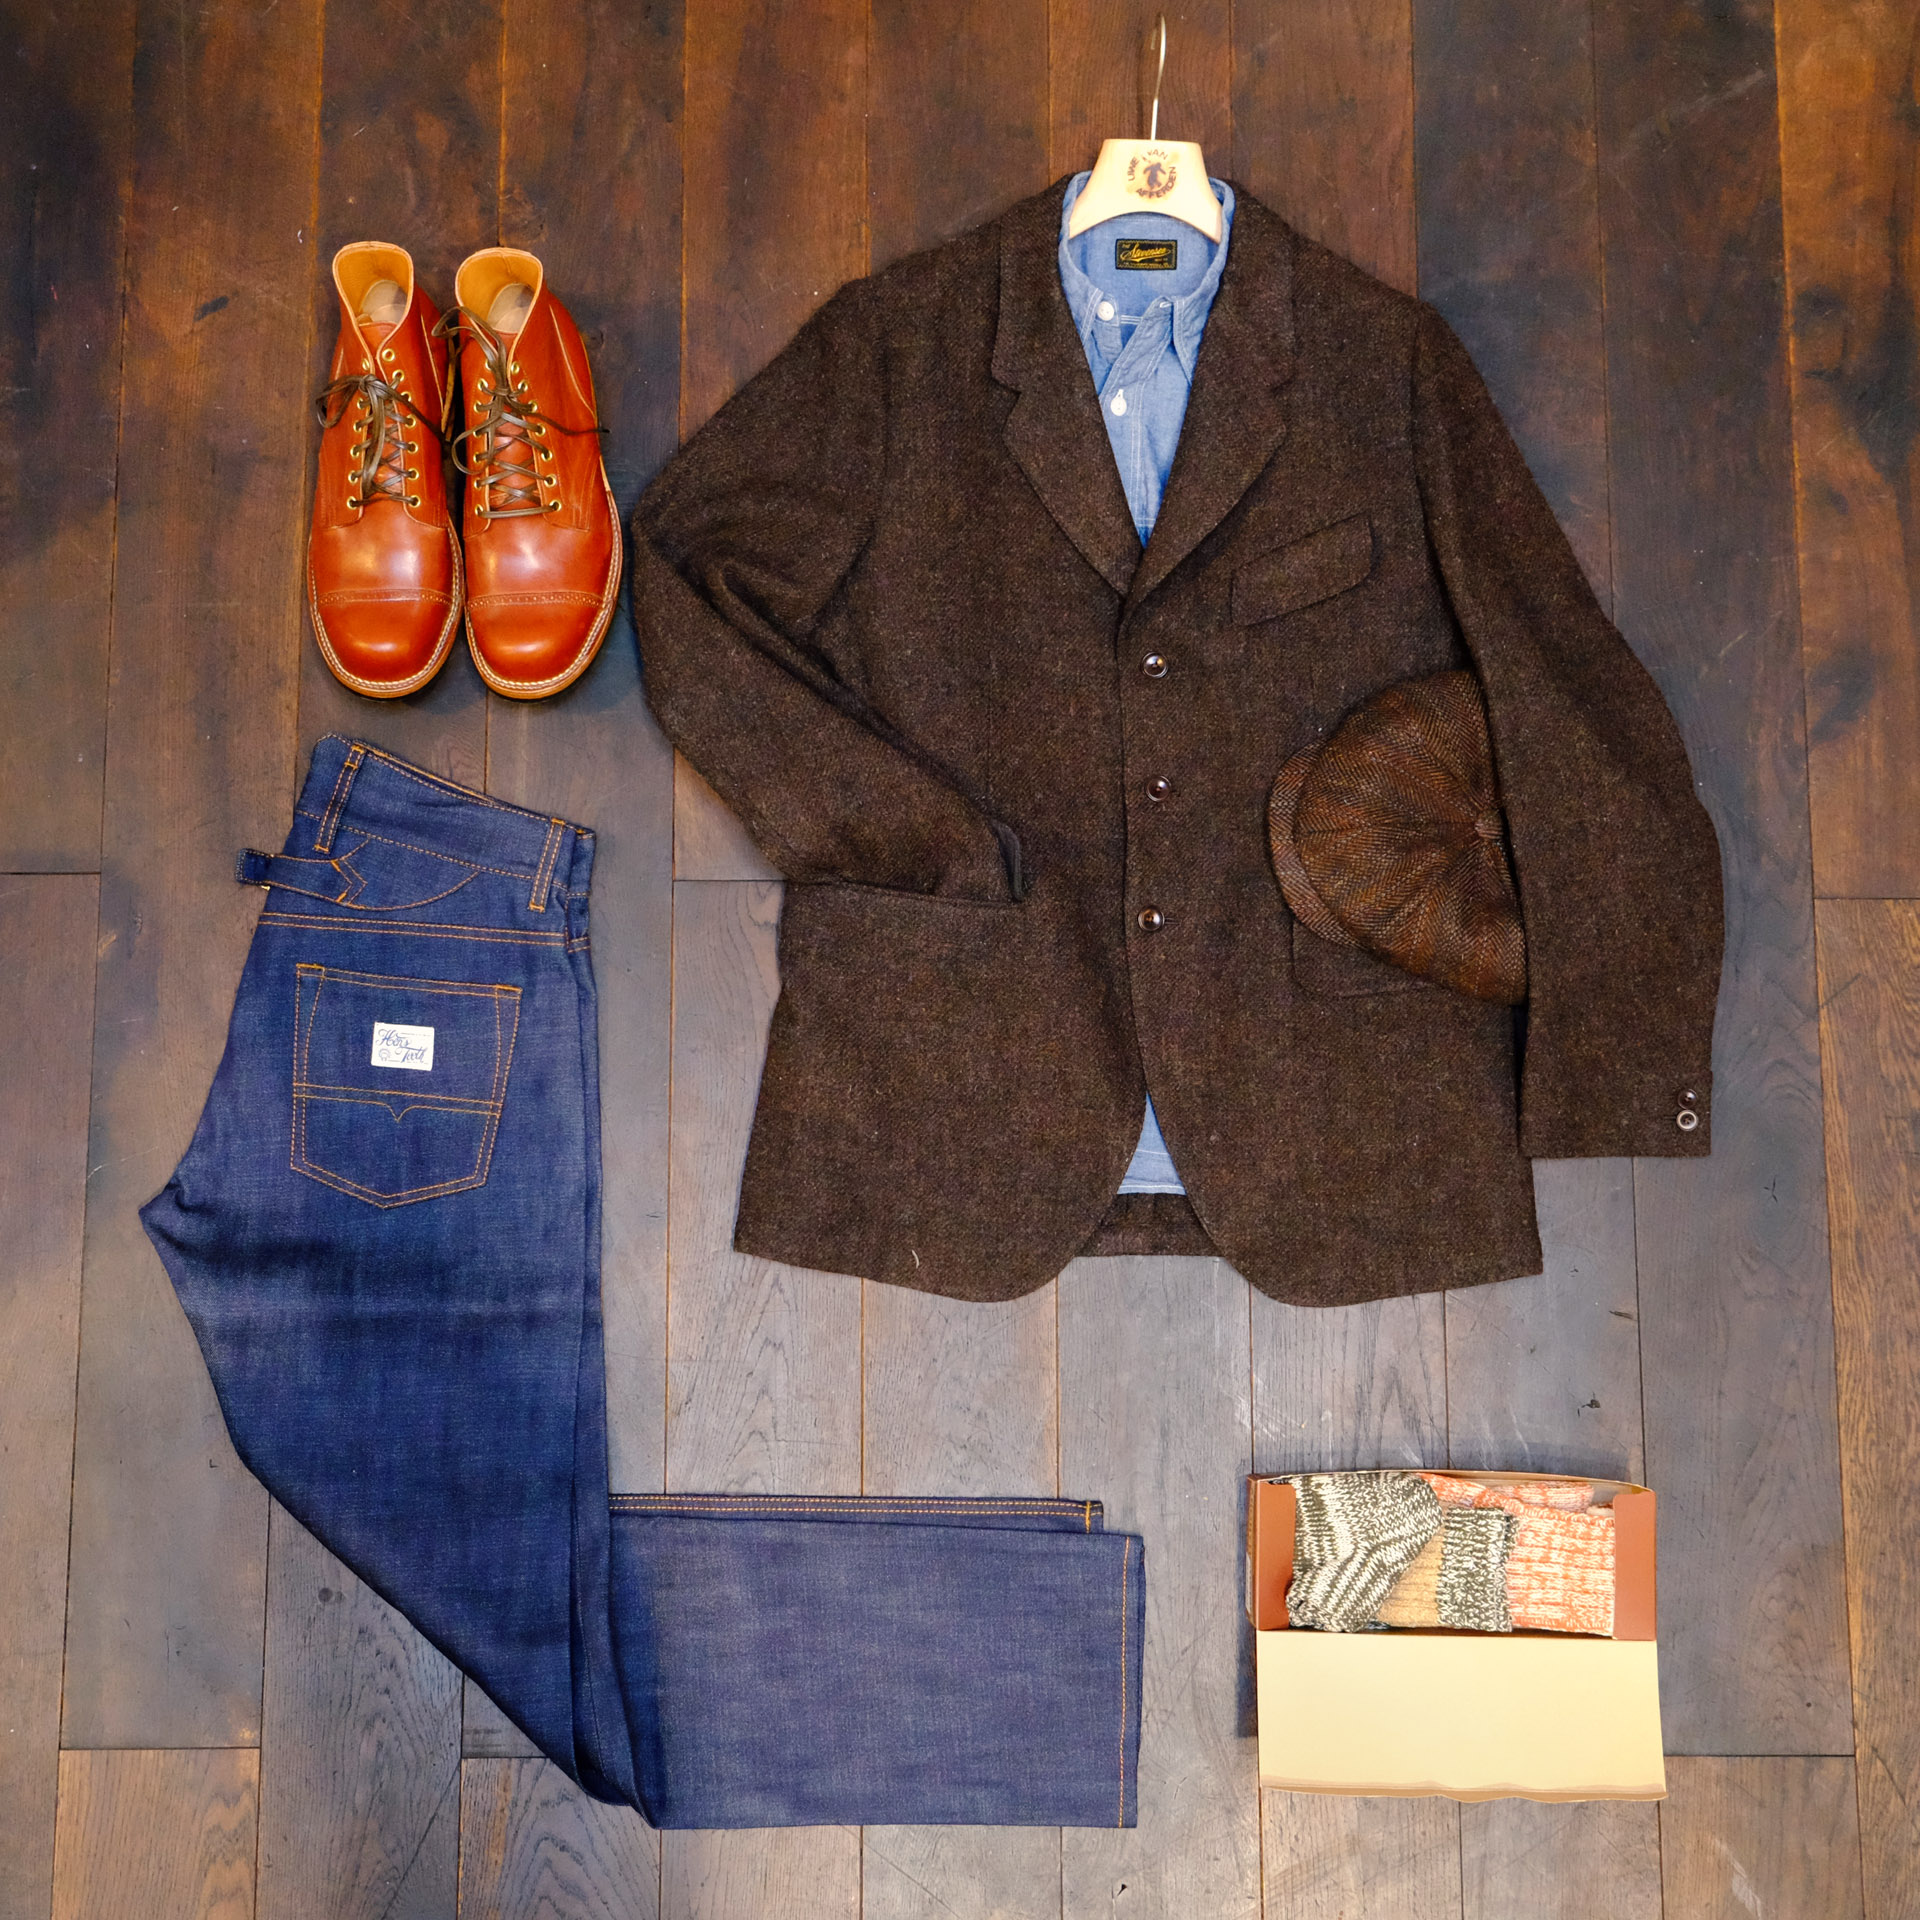 outfit-jeans-tweed-vibergboots-kappe-stevensonoverall-chambray-hemd